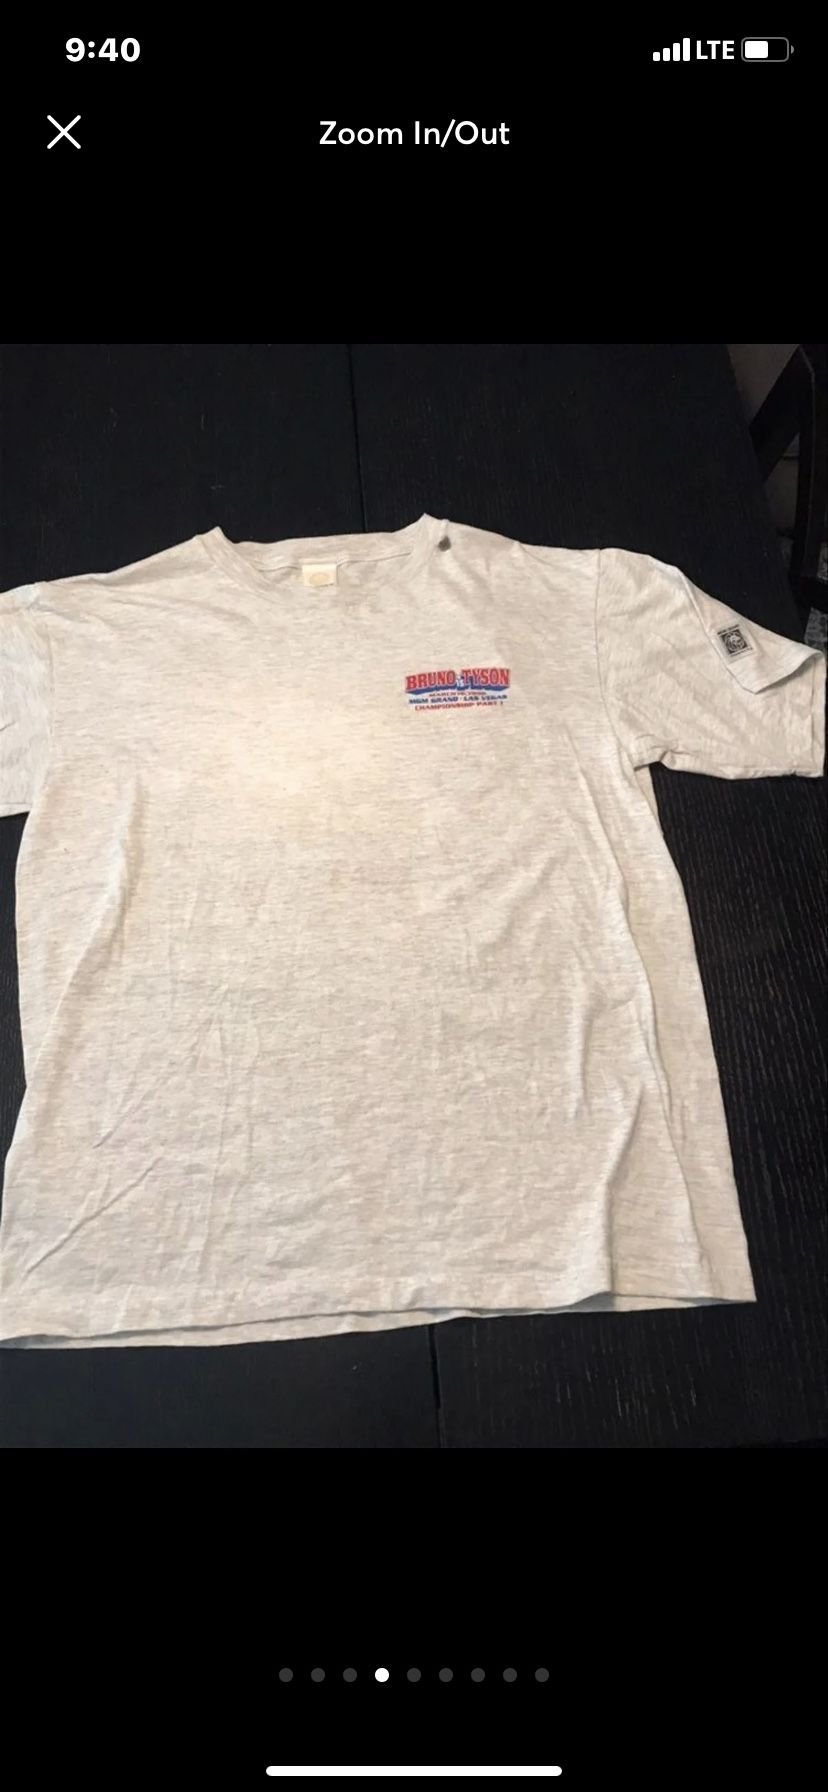 Vintage 1996 Mike Tyson Verse Frank Bruno  MGM tag Size L/XL $300 Flaw Little Ink Left Side You can see in The Last Picture